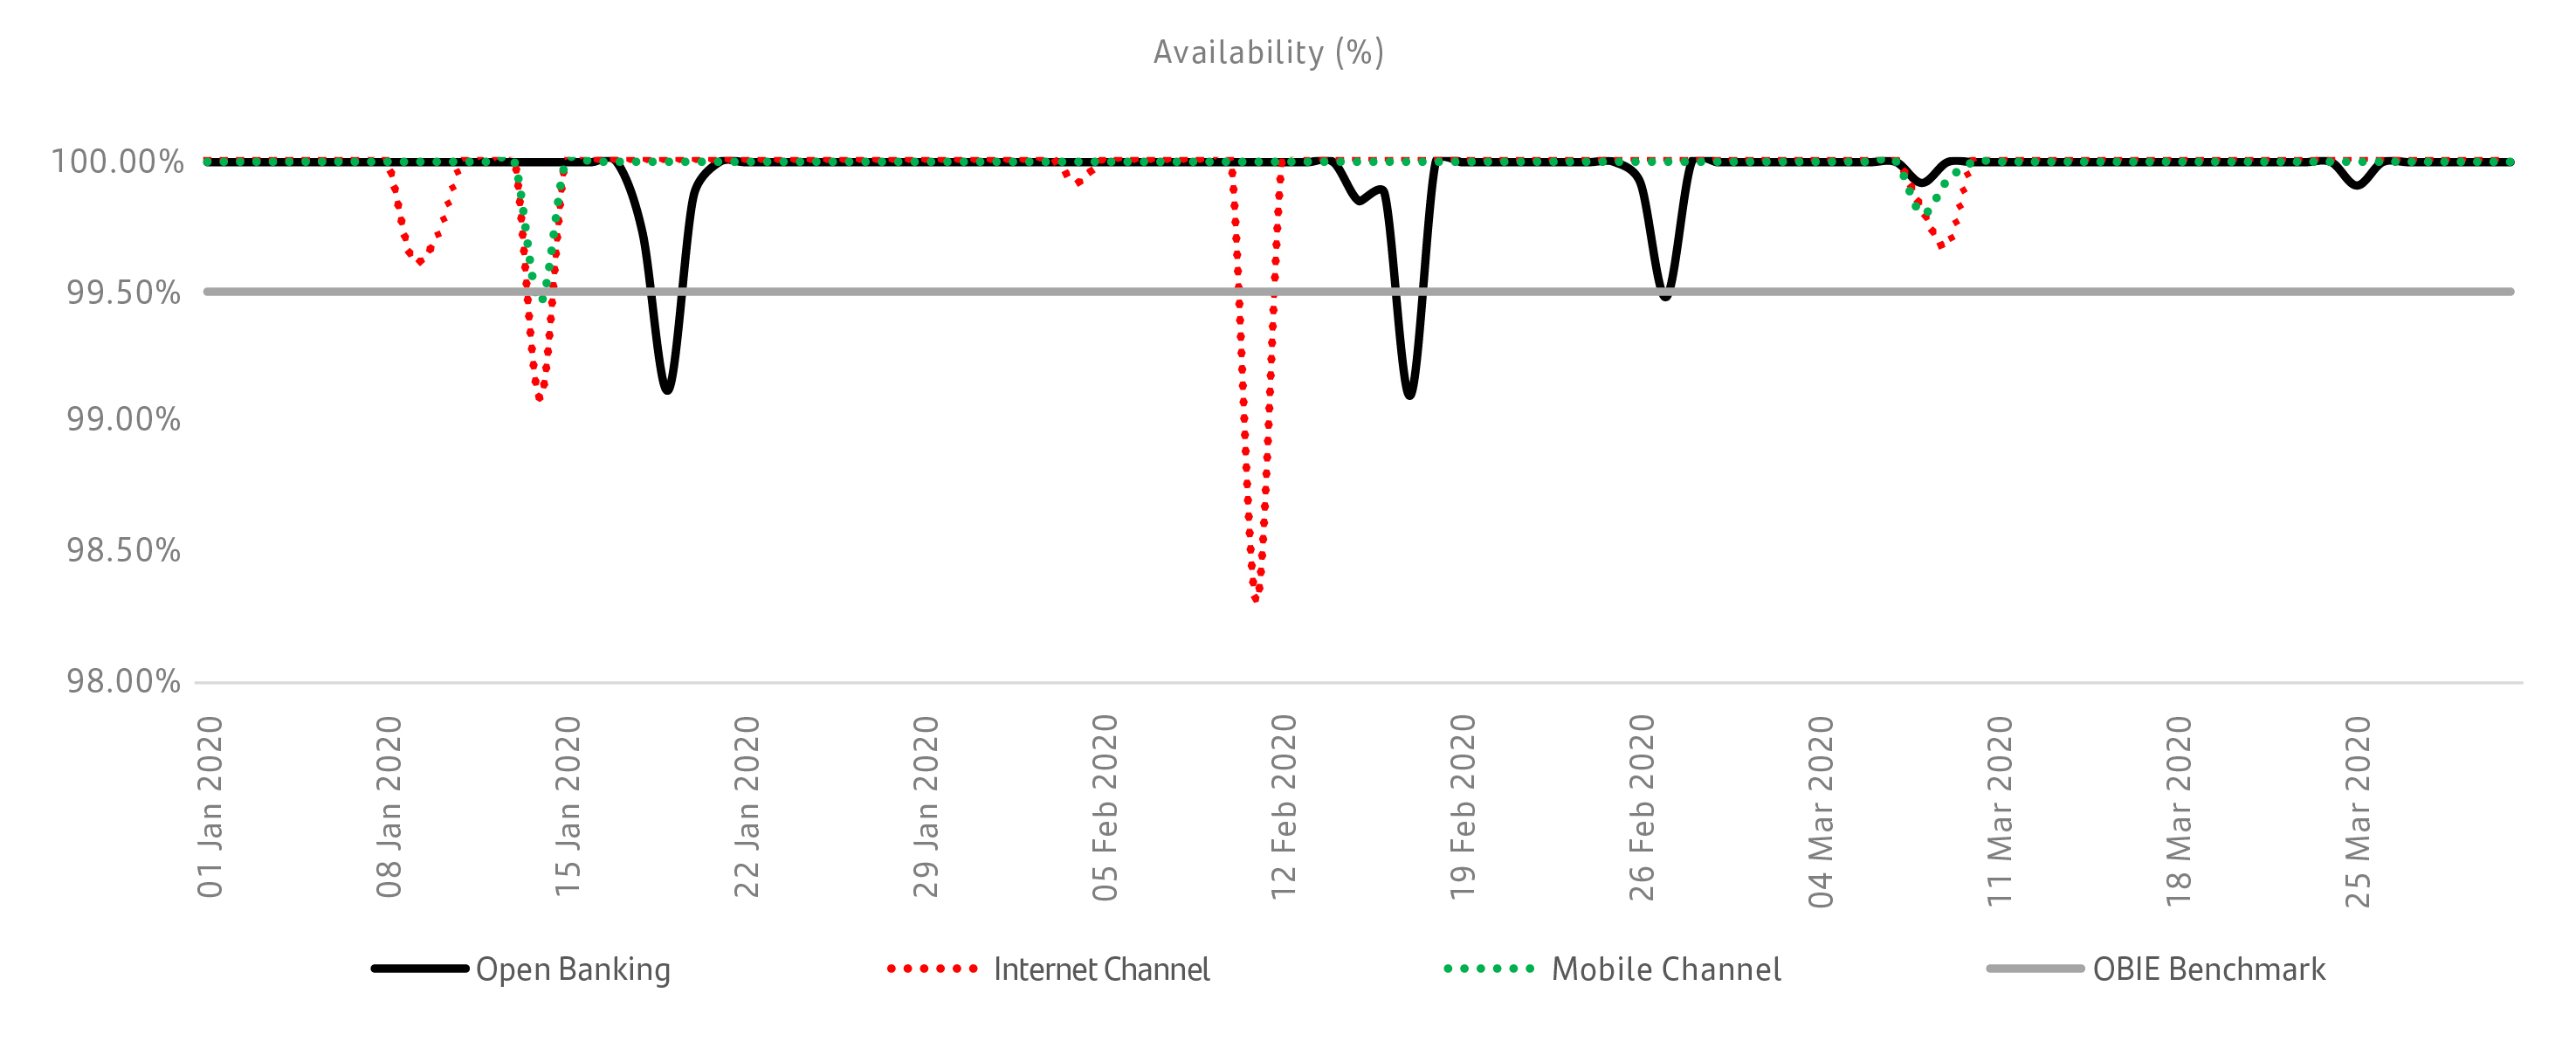 Banking channels service availability